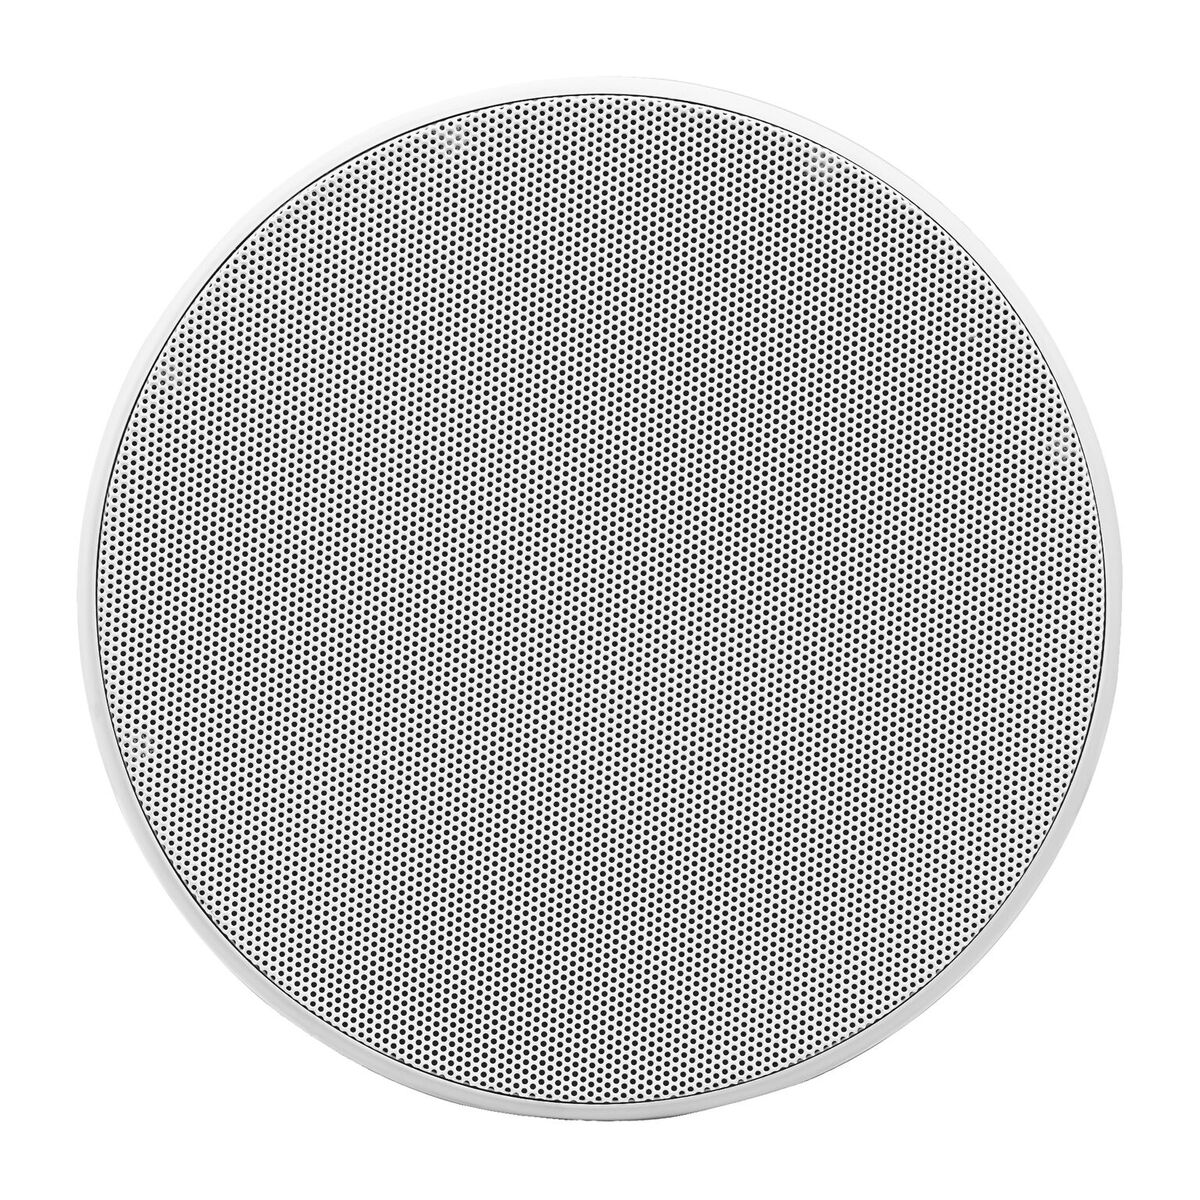 Ace500 5 25 Inch Trimless Thin Bezel Ceiling Speaker Pair